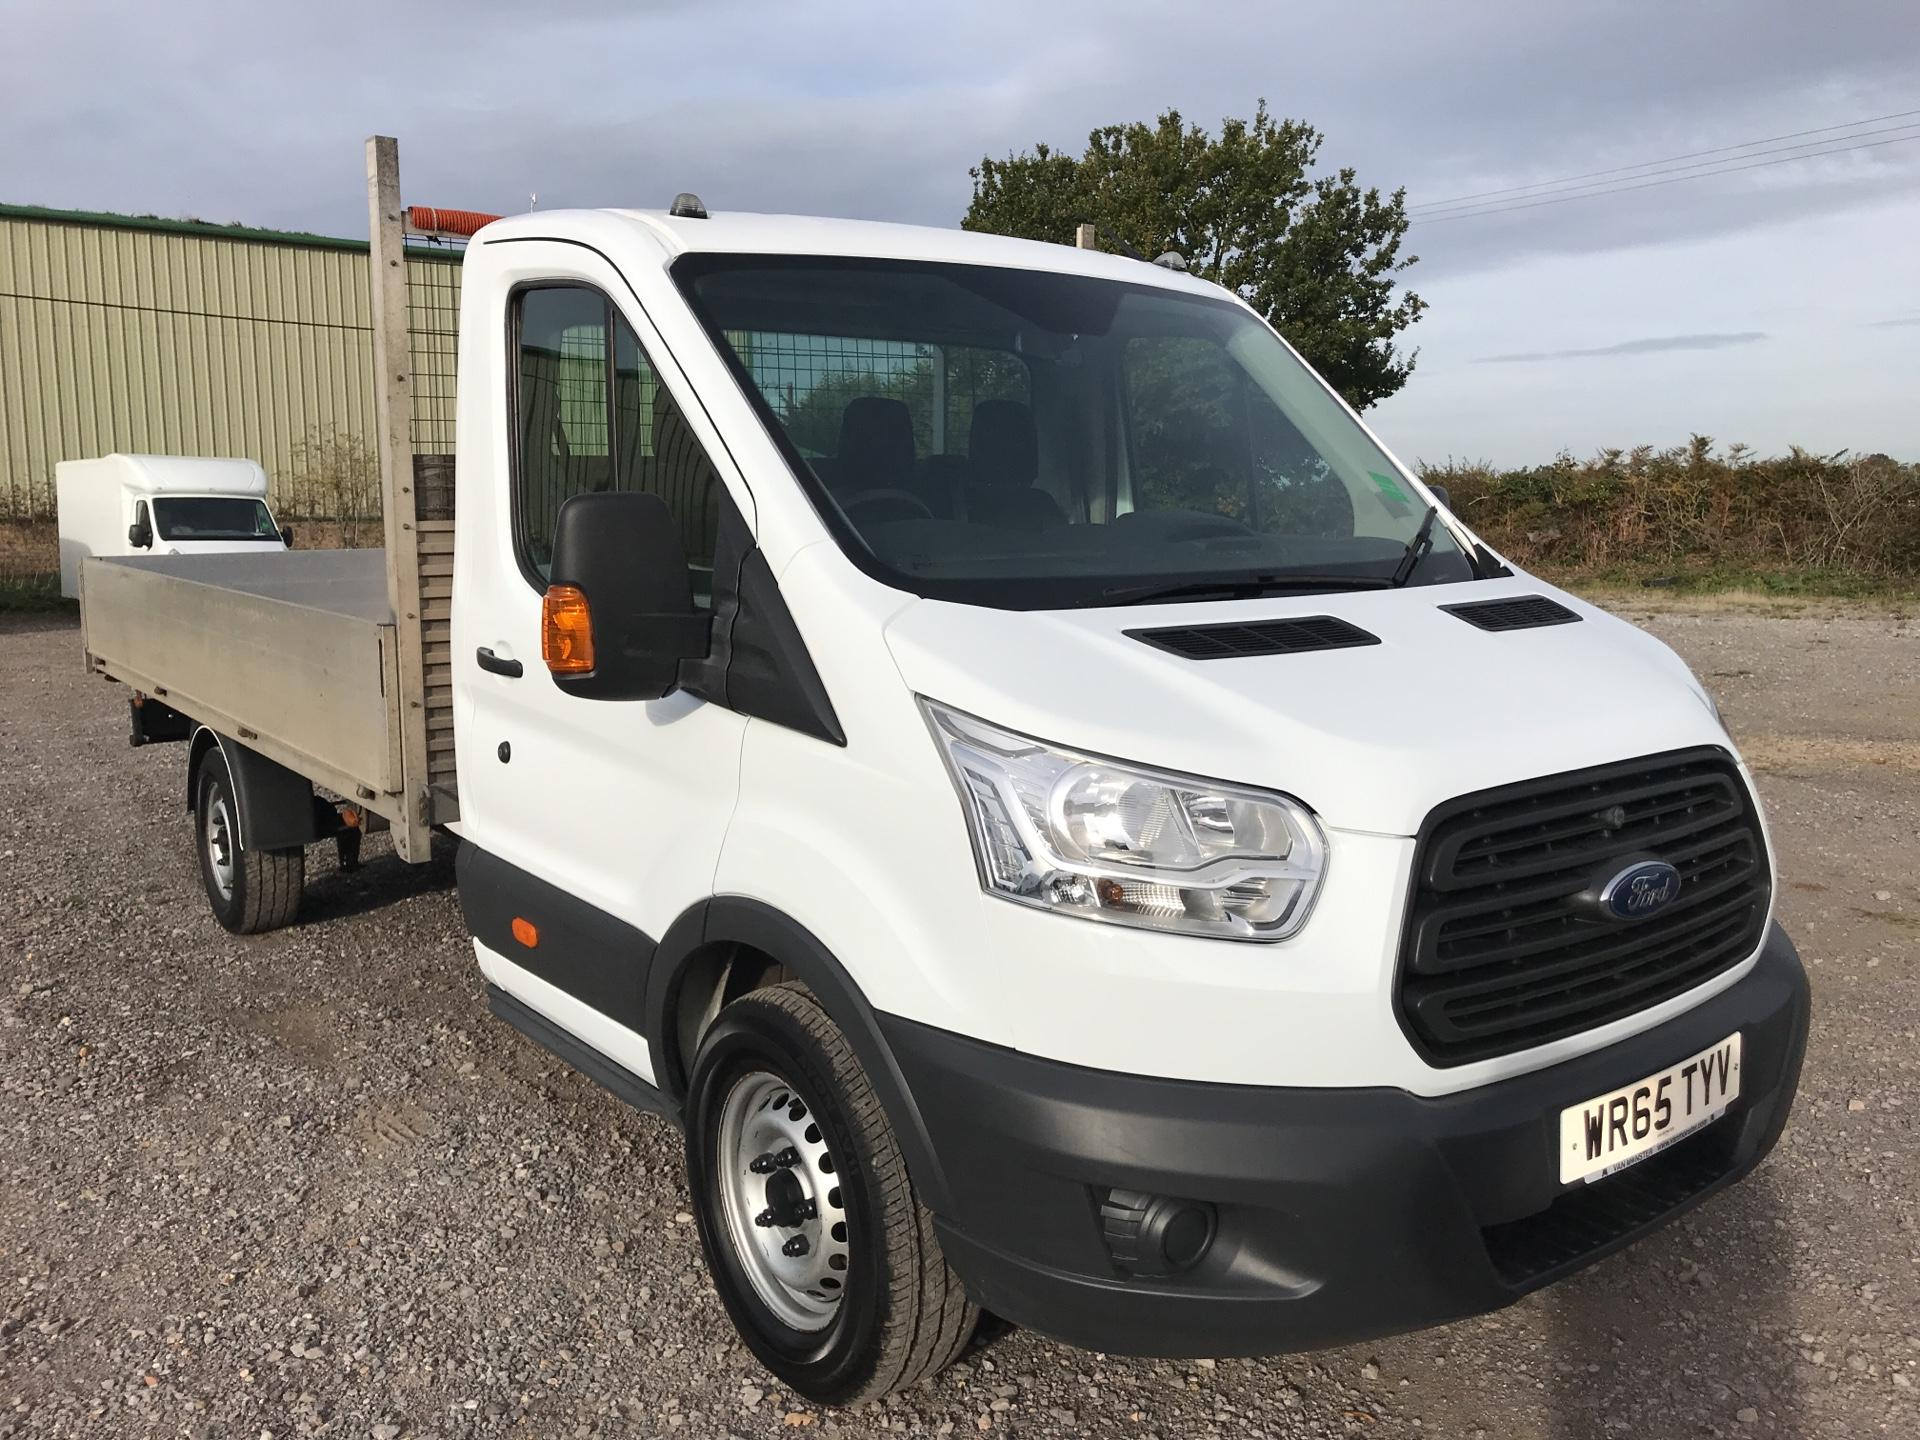 2015 Ford Transit 350 L4 DROP SIDE 125PS EURO 5  (WR65TYV)